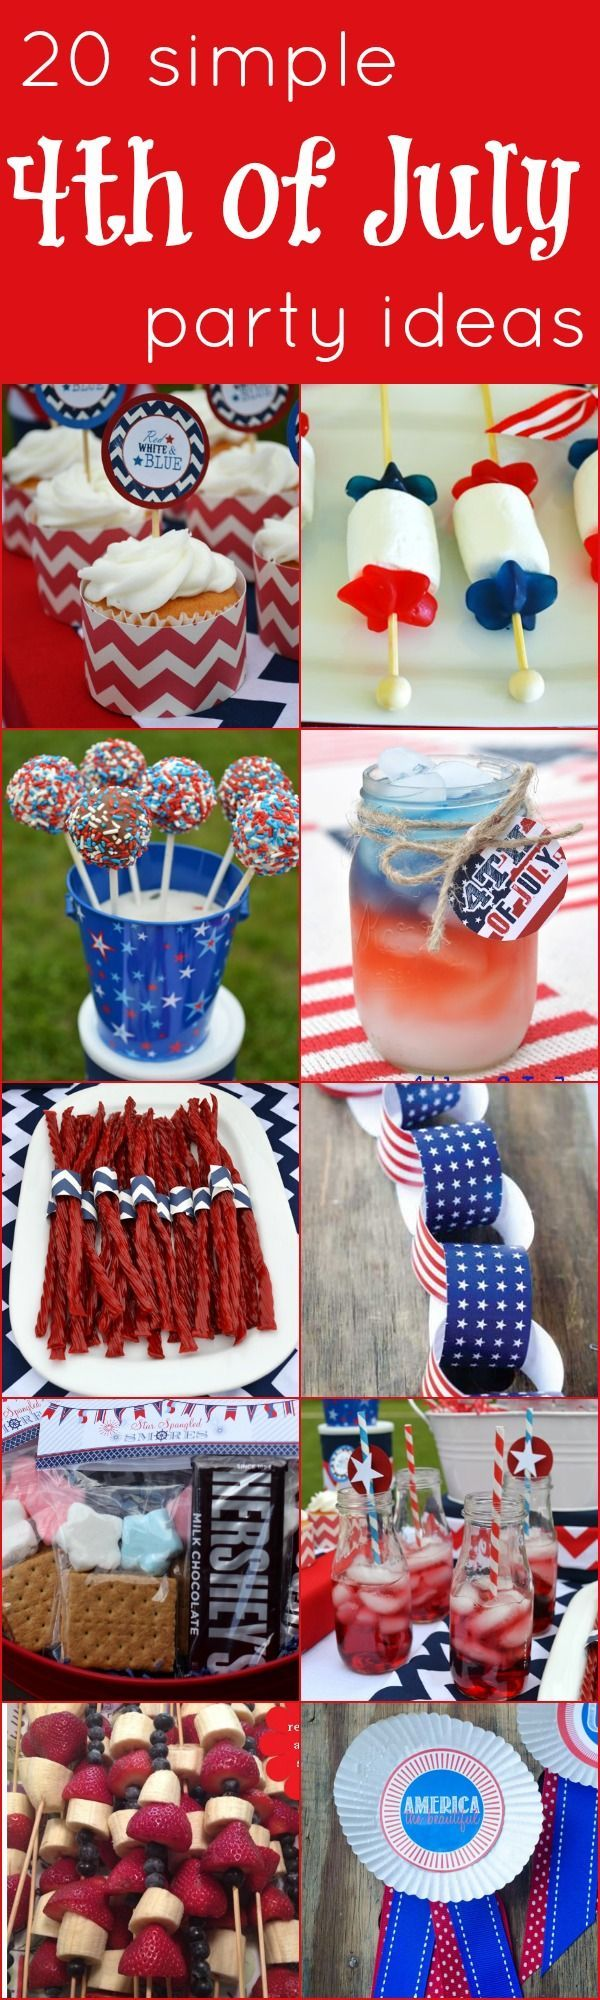 20 Simple 4th of July Party Ideas, plenty of ideas to keep your guests happy until the fireworks!